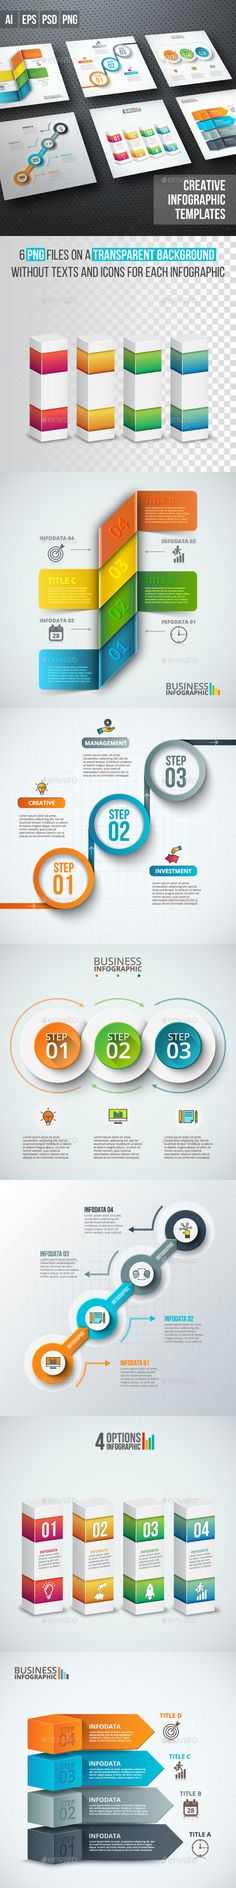 Business Infographic Diagrams Template PSD, Transparent PNG, Vector EPS, AI Illustrator